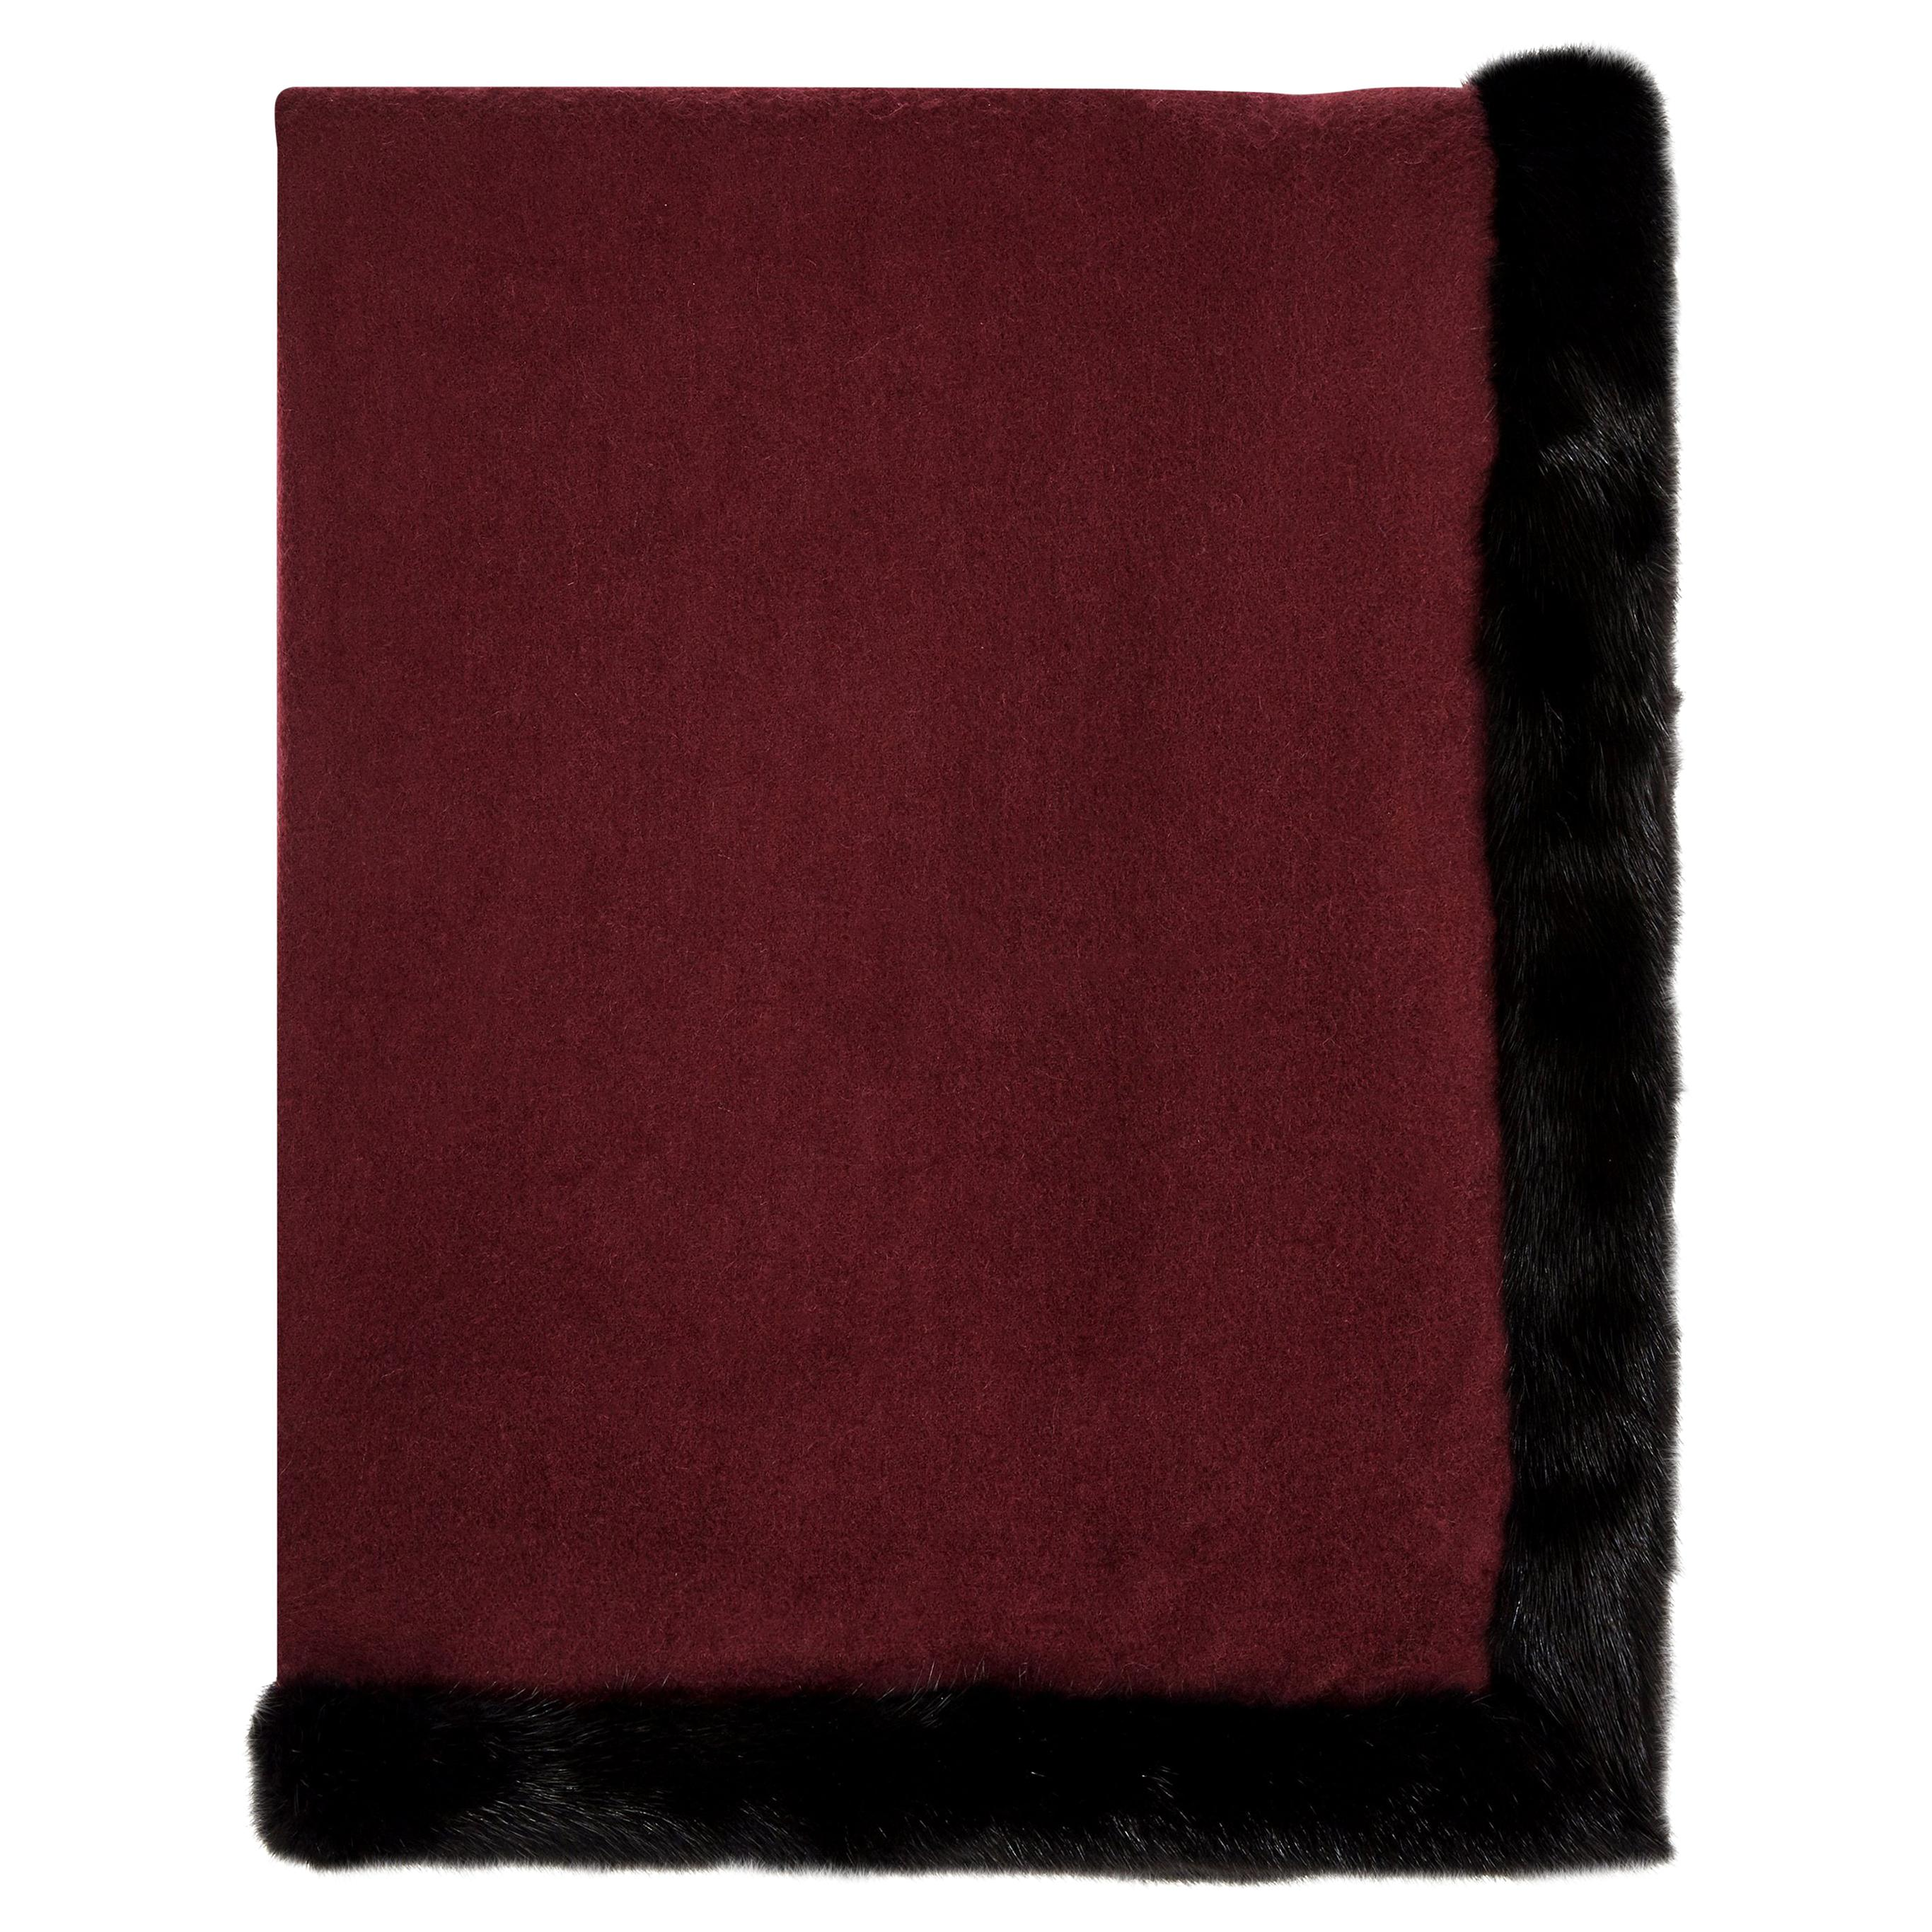 Verheyen London Mink Fur Trimmed Black & Burgundy Cashmere Shawl